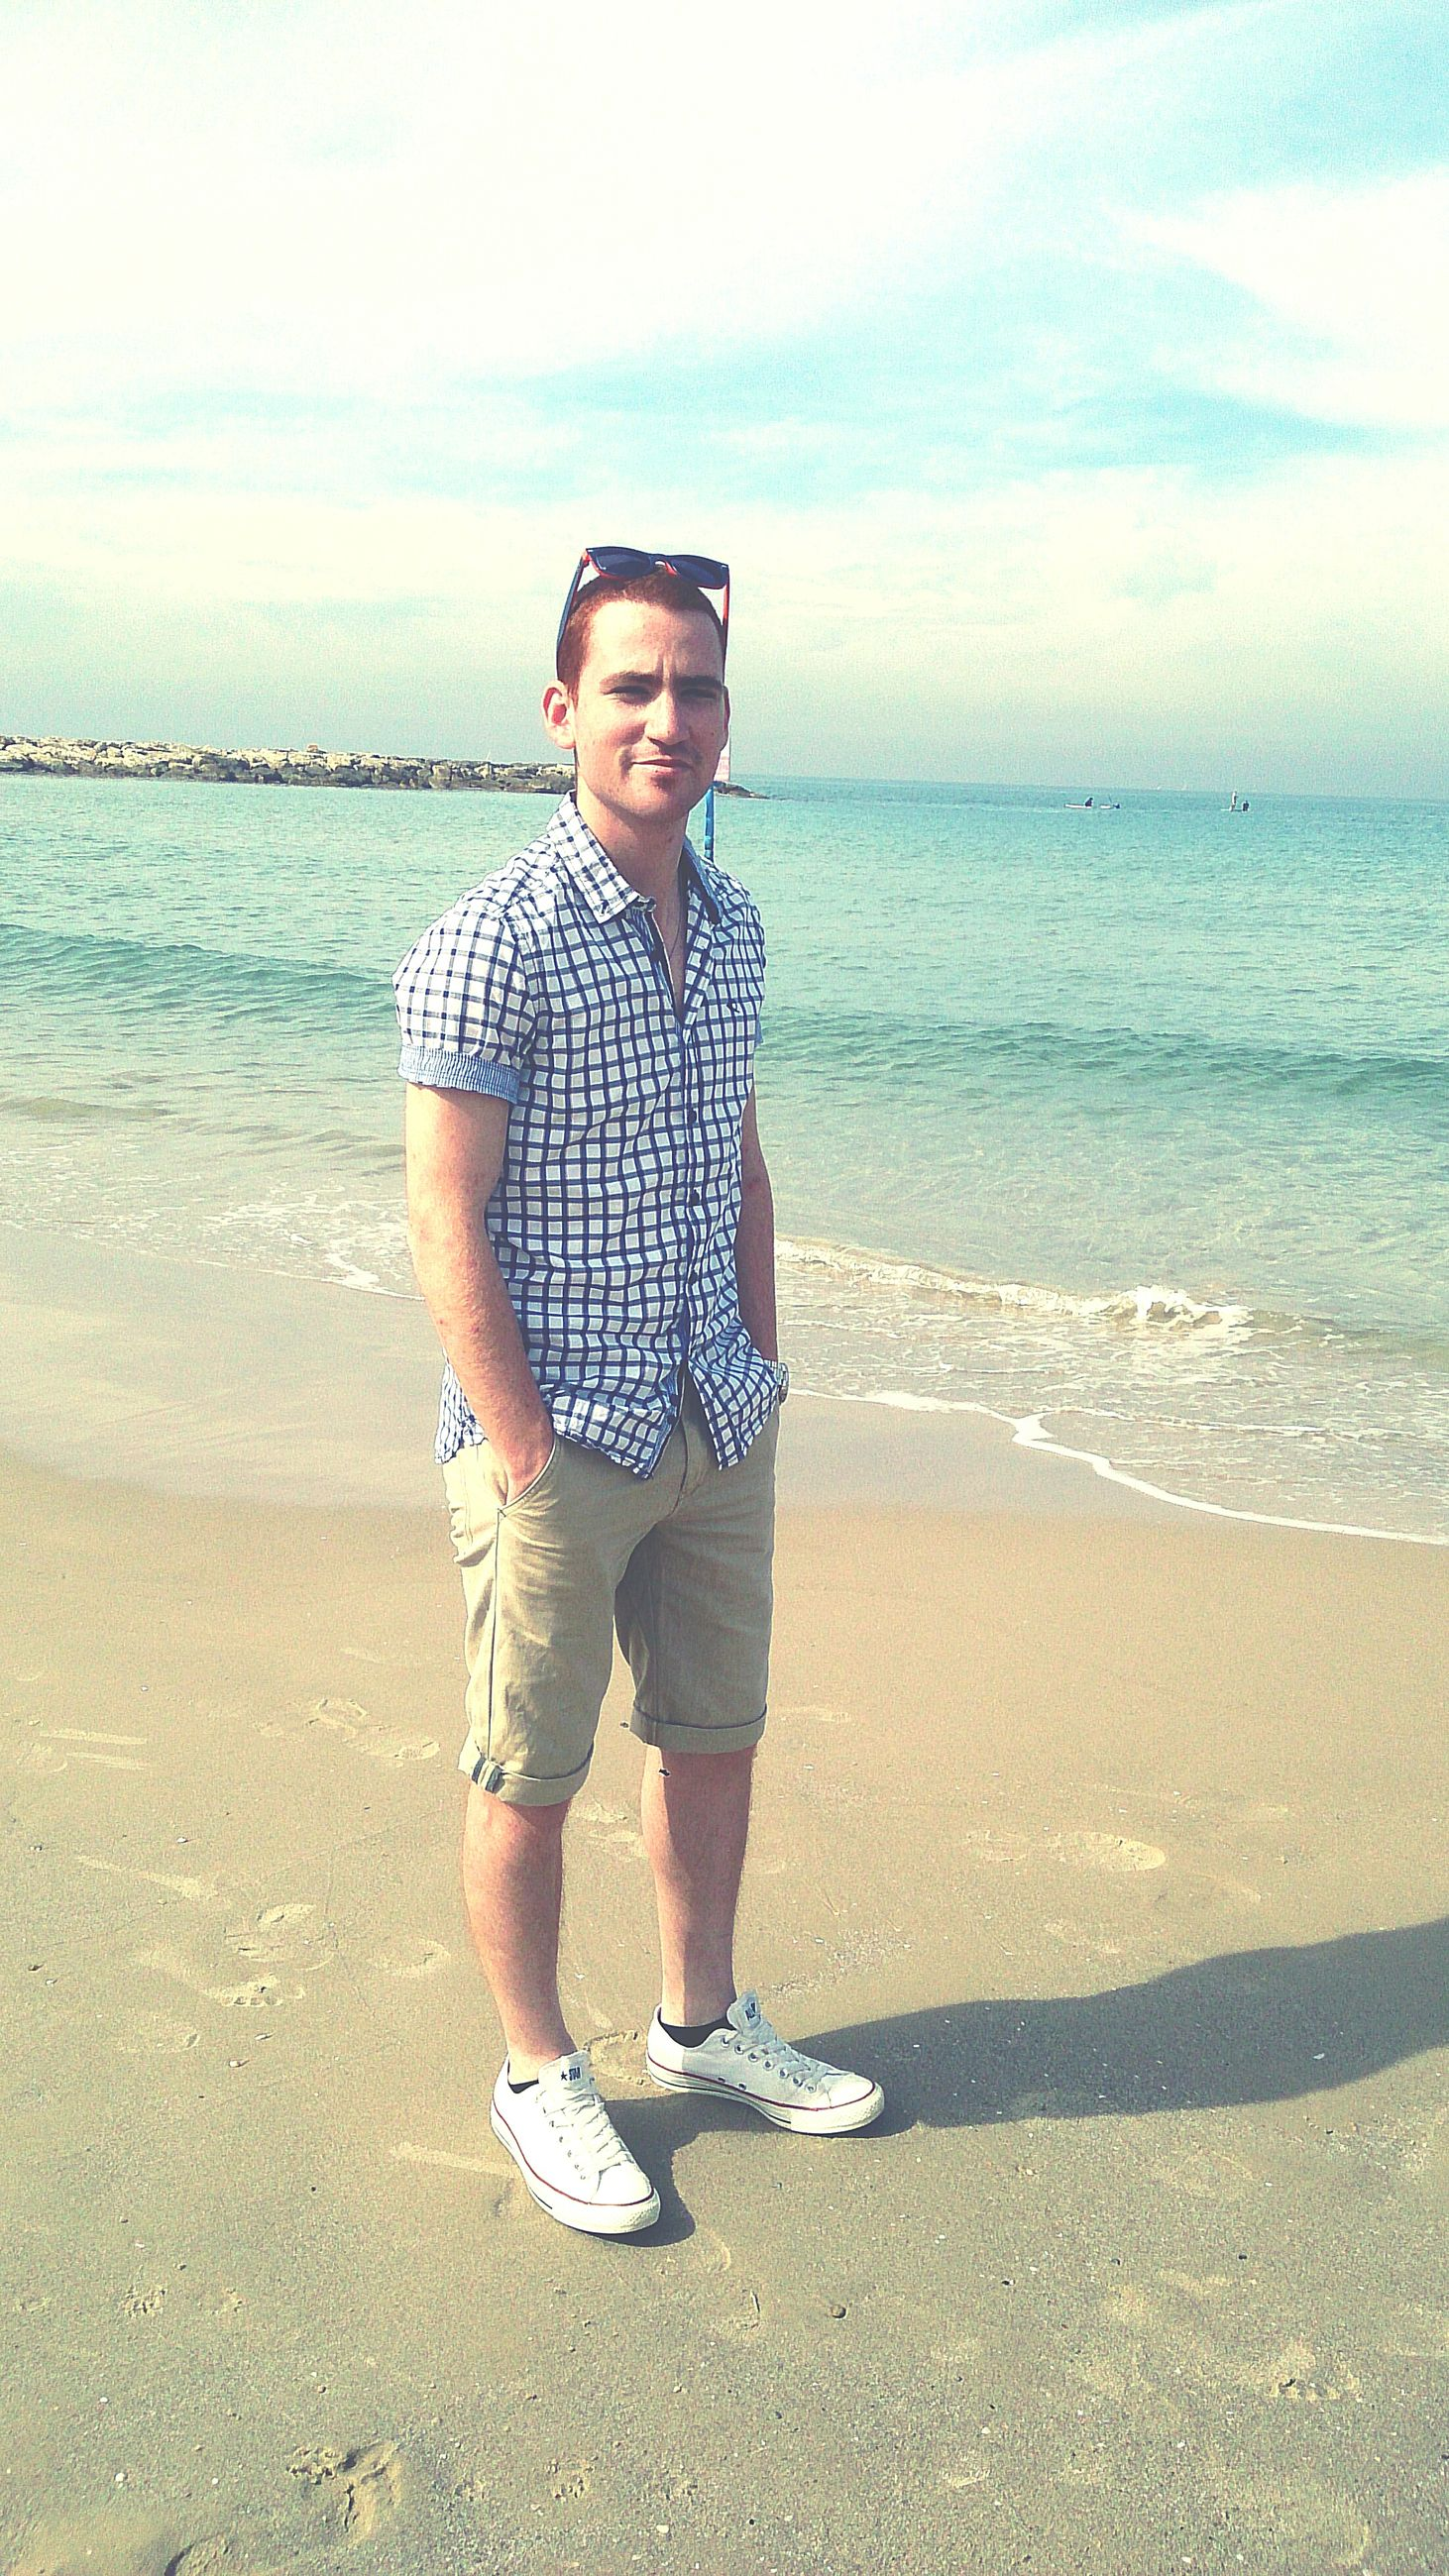 beach, sand, shore, sea, full length, water, casual clothing, lifestyles, person, leisure activity, horizon over water, sky, childhood, portrait, standing, looking at camera, elementary age, front view